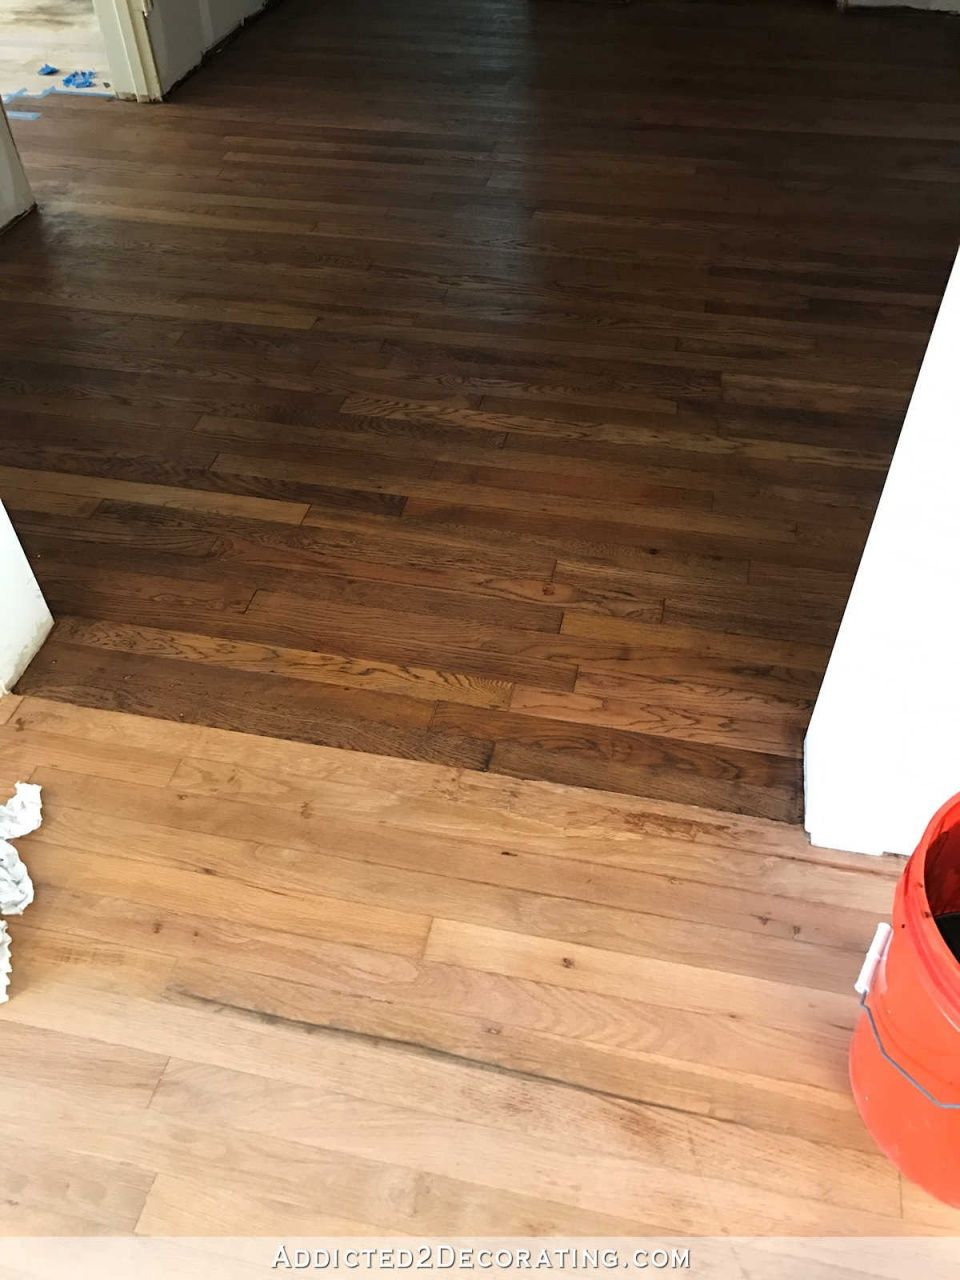 Unfinished Hardwood Flooring Near Me in 2020 Red oak